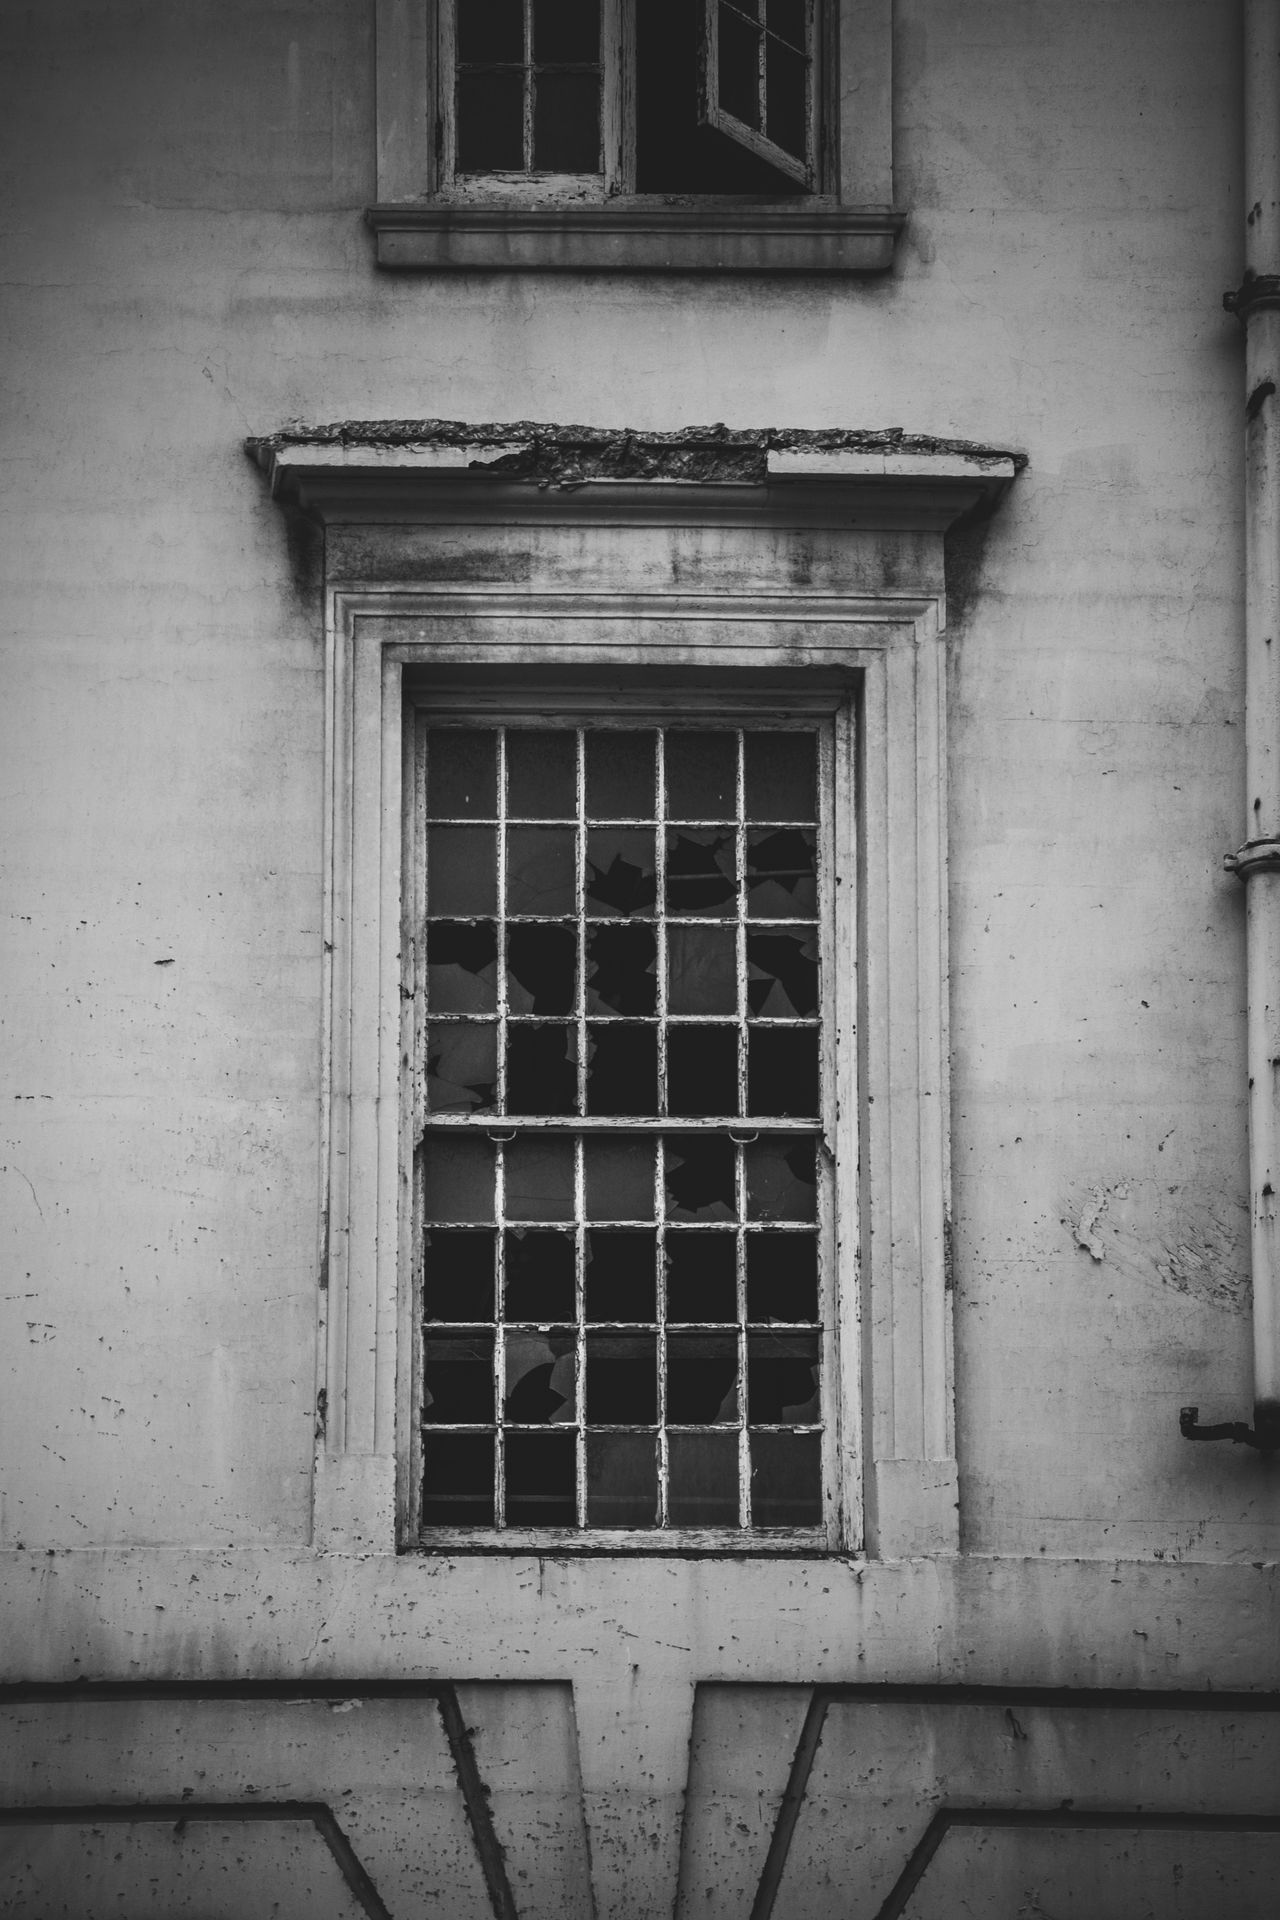 Abandoned building Abandoned Abandoned Buildings Architecture Best Of EyeEm Black And White Black And White Architecture Blackandwhite Broken Glass Broken Window Building Exterior Built Structure House Long Goodbye No People Old Building  Old Buildings Outdoors Ruin Ruined Building Scary Scary Building Sombre Week On Eyeem Welcome To Black Window The Secret Spaces